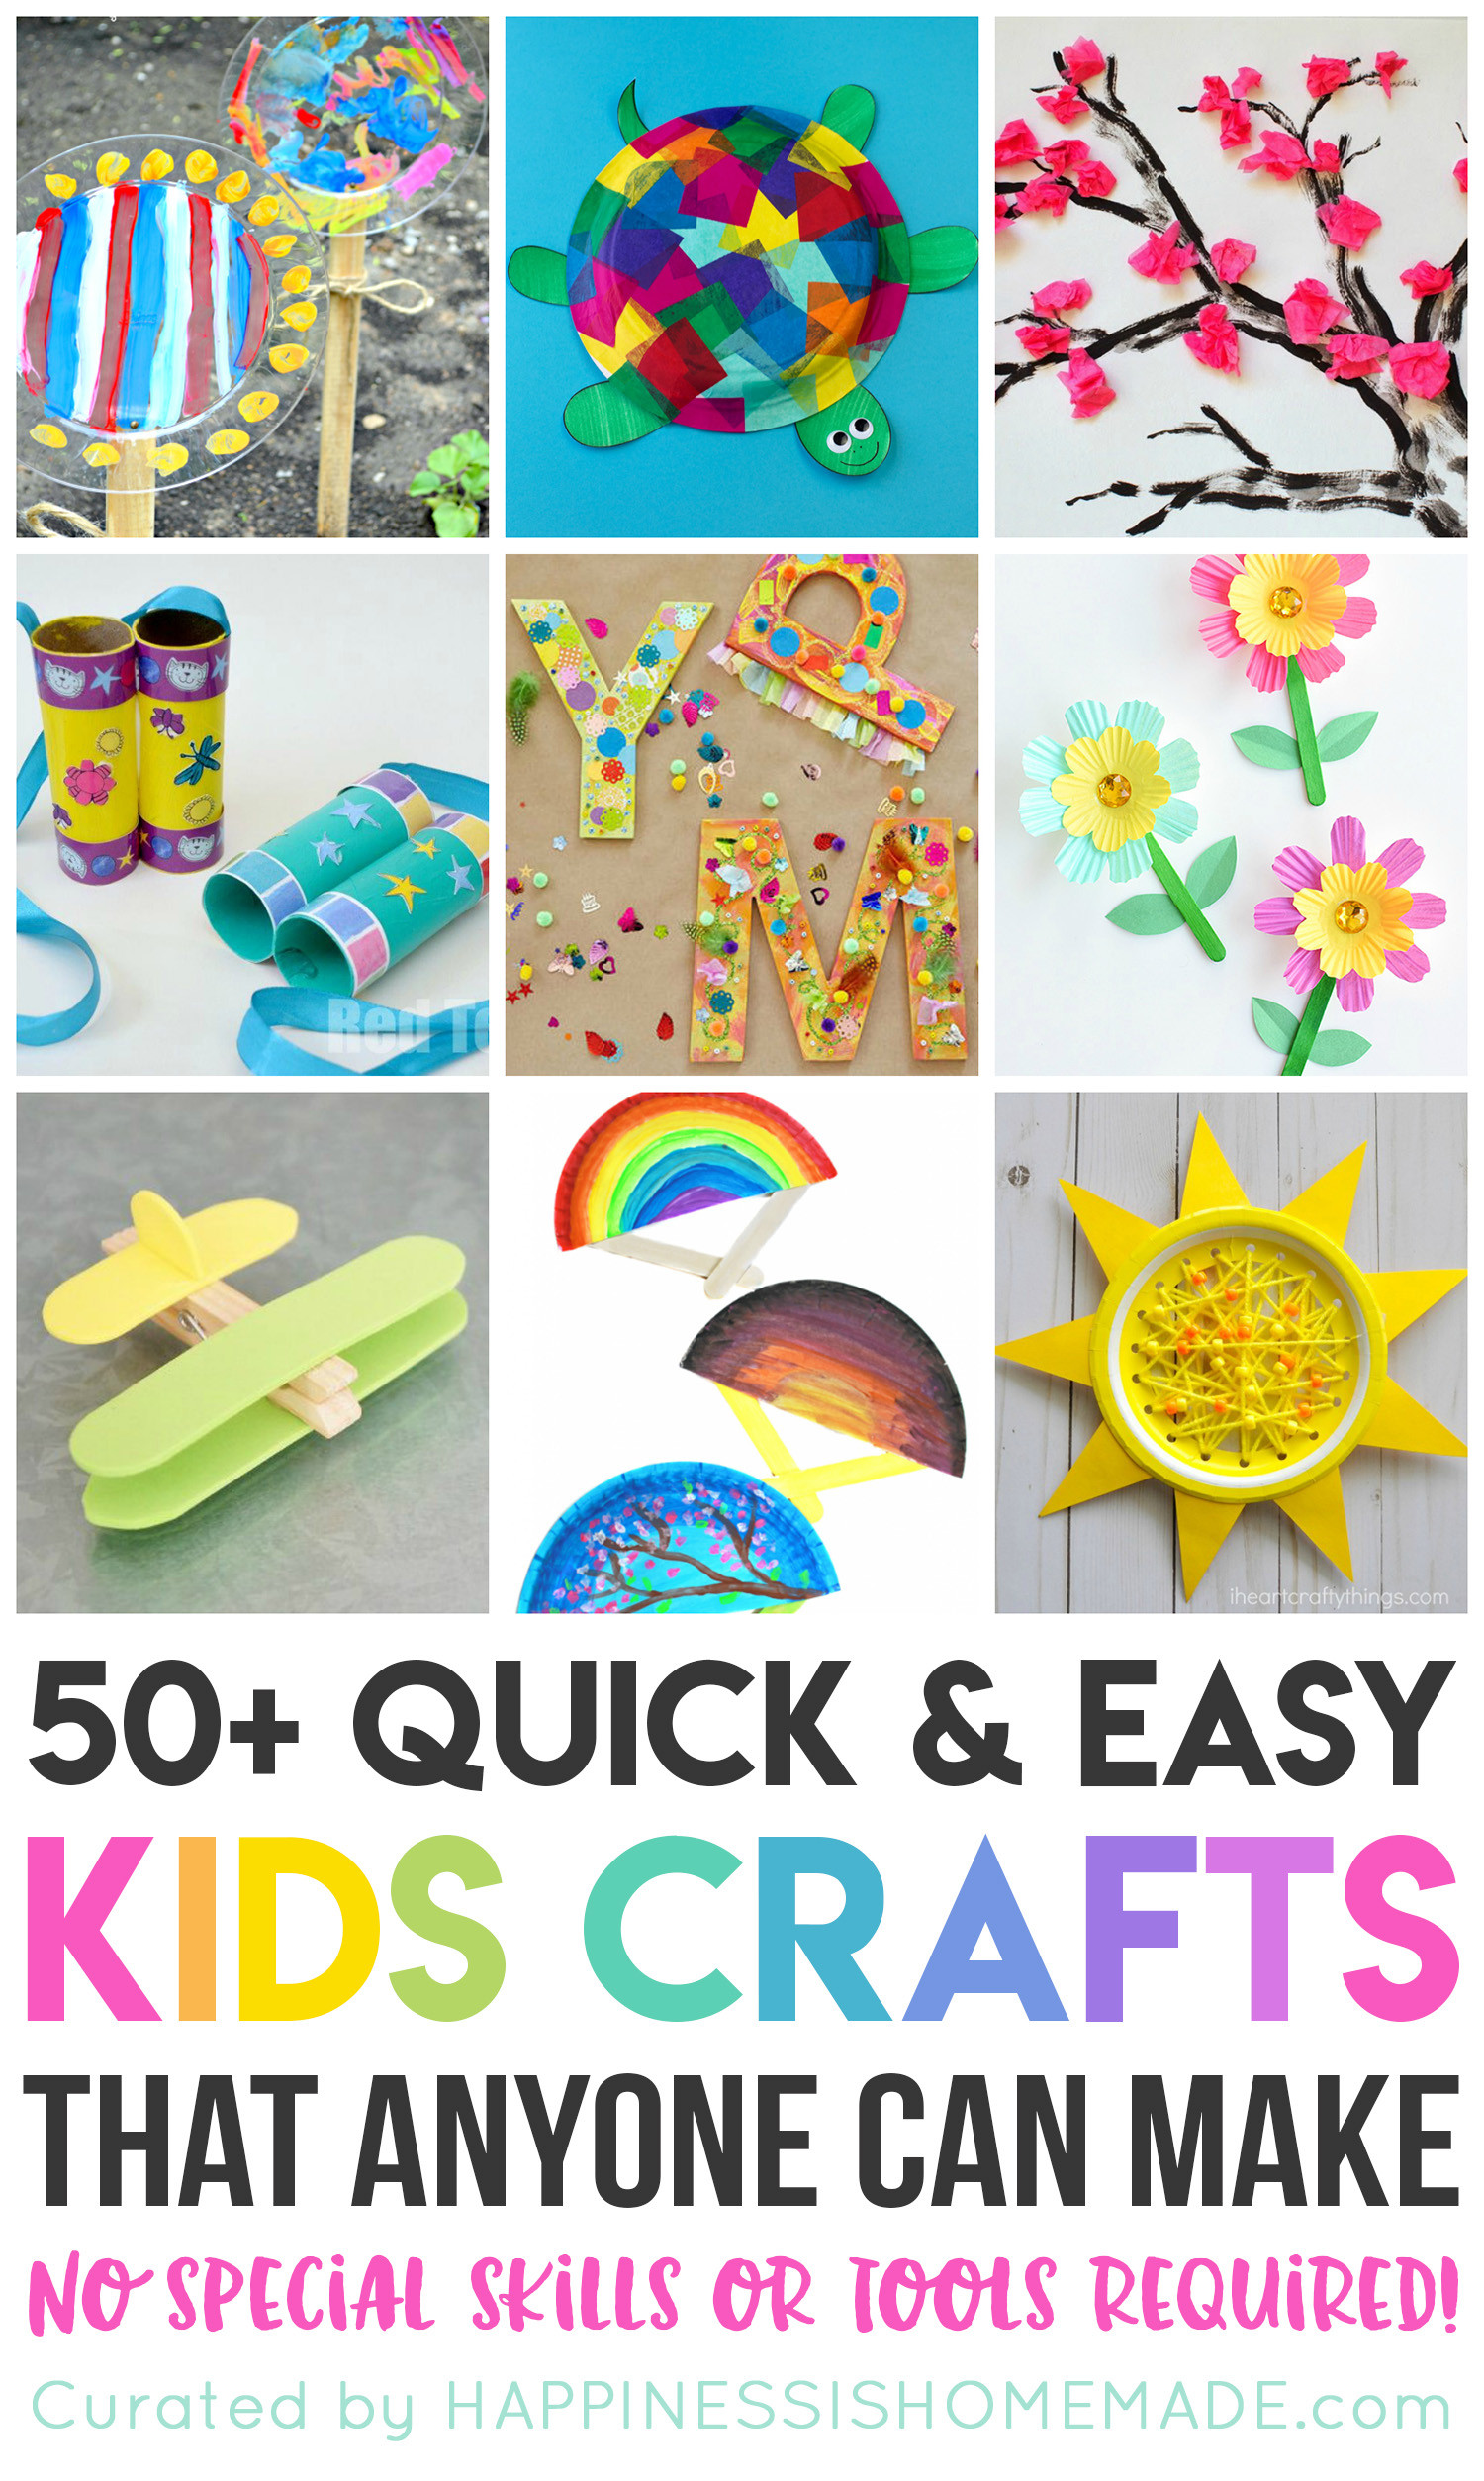 Best ideas about Easy Crafts For Kids To Make At Home . Save or Pin 50 Quick & Easy Kids Crafts that ANYONE Can Make Now.